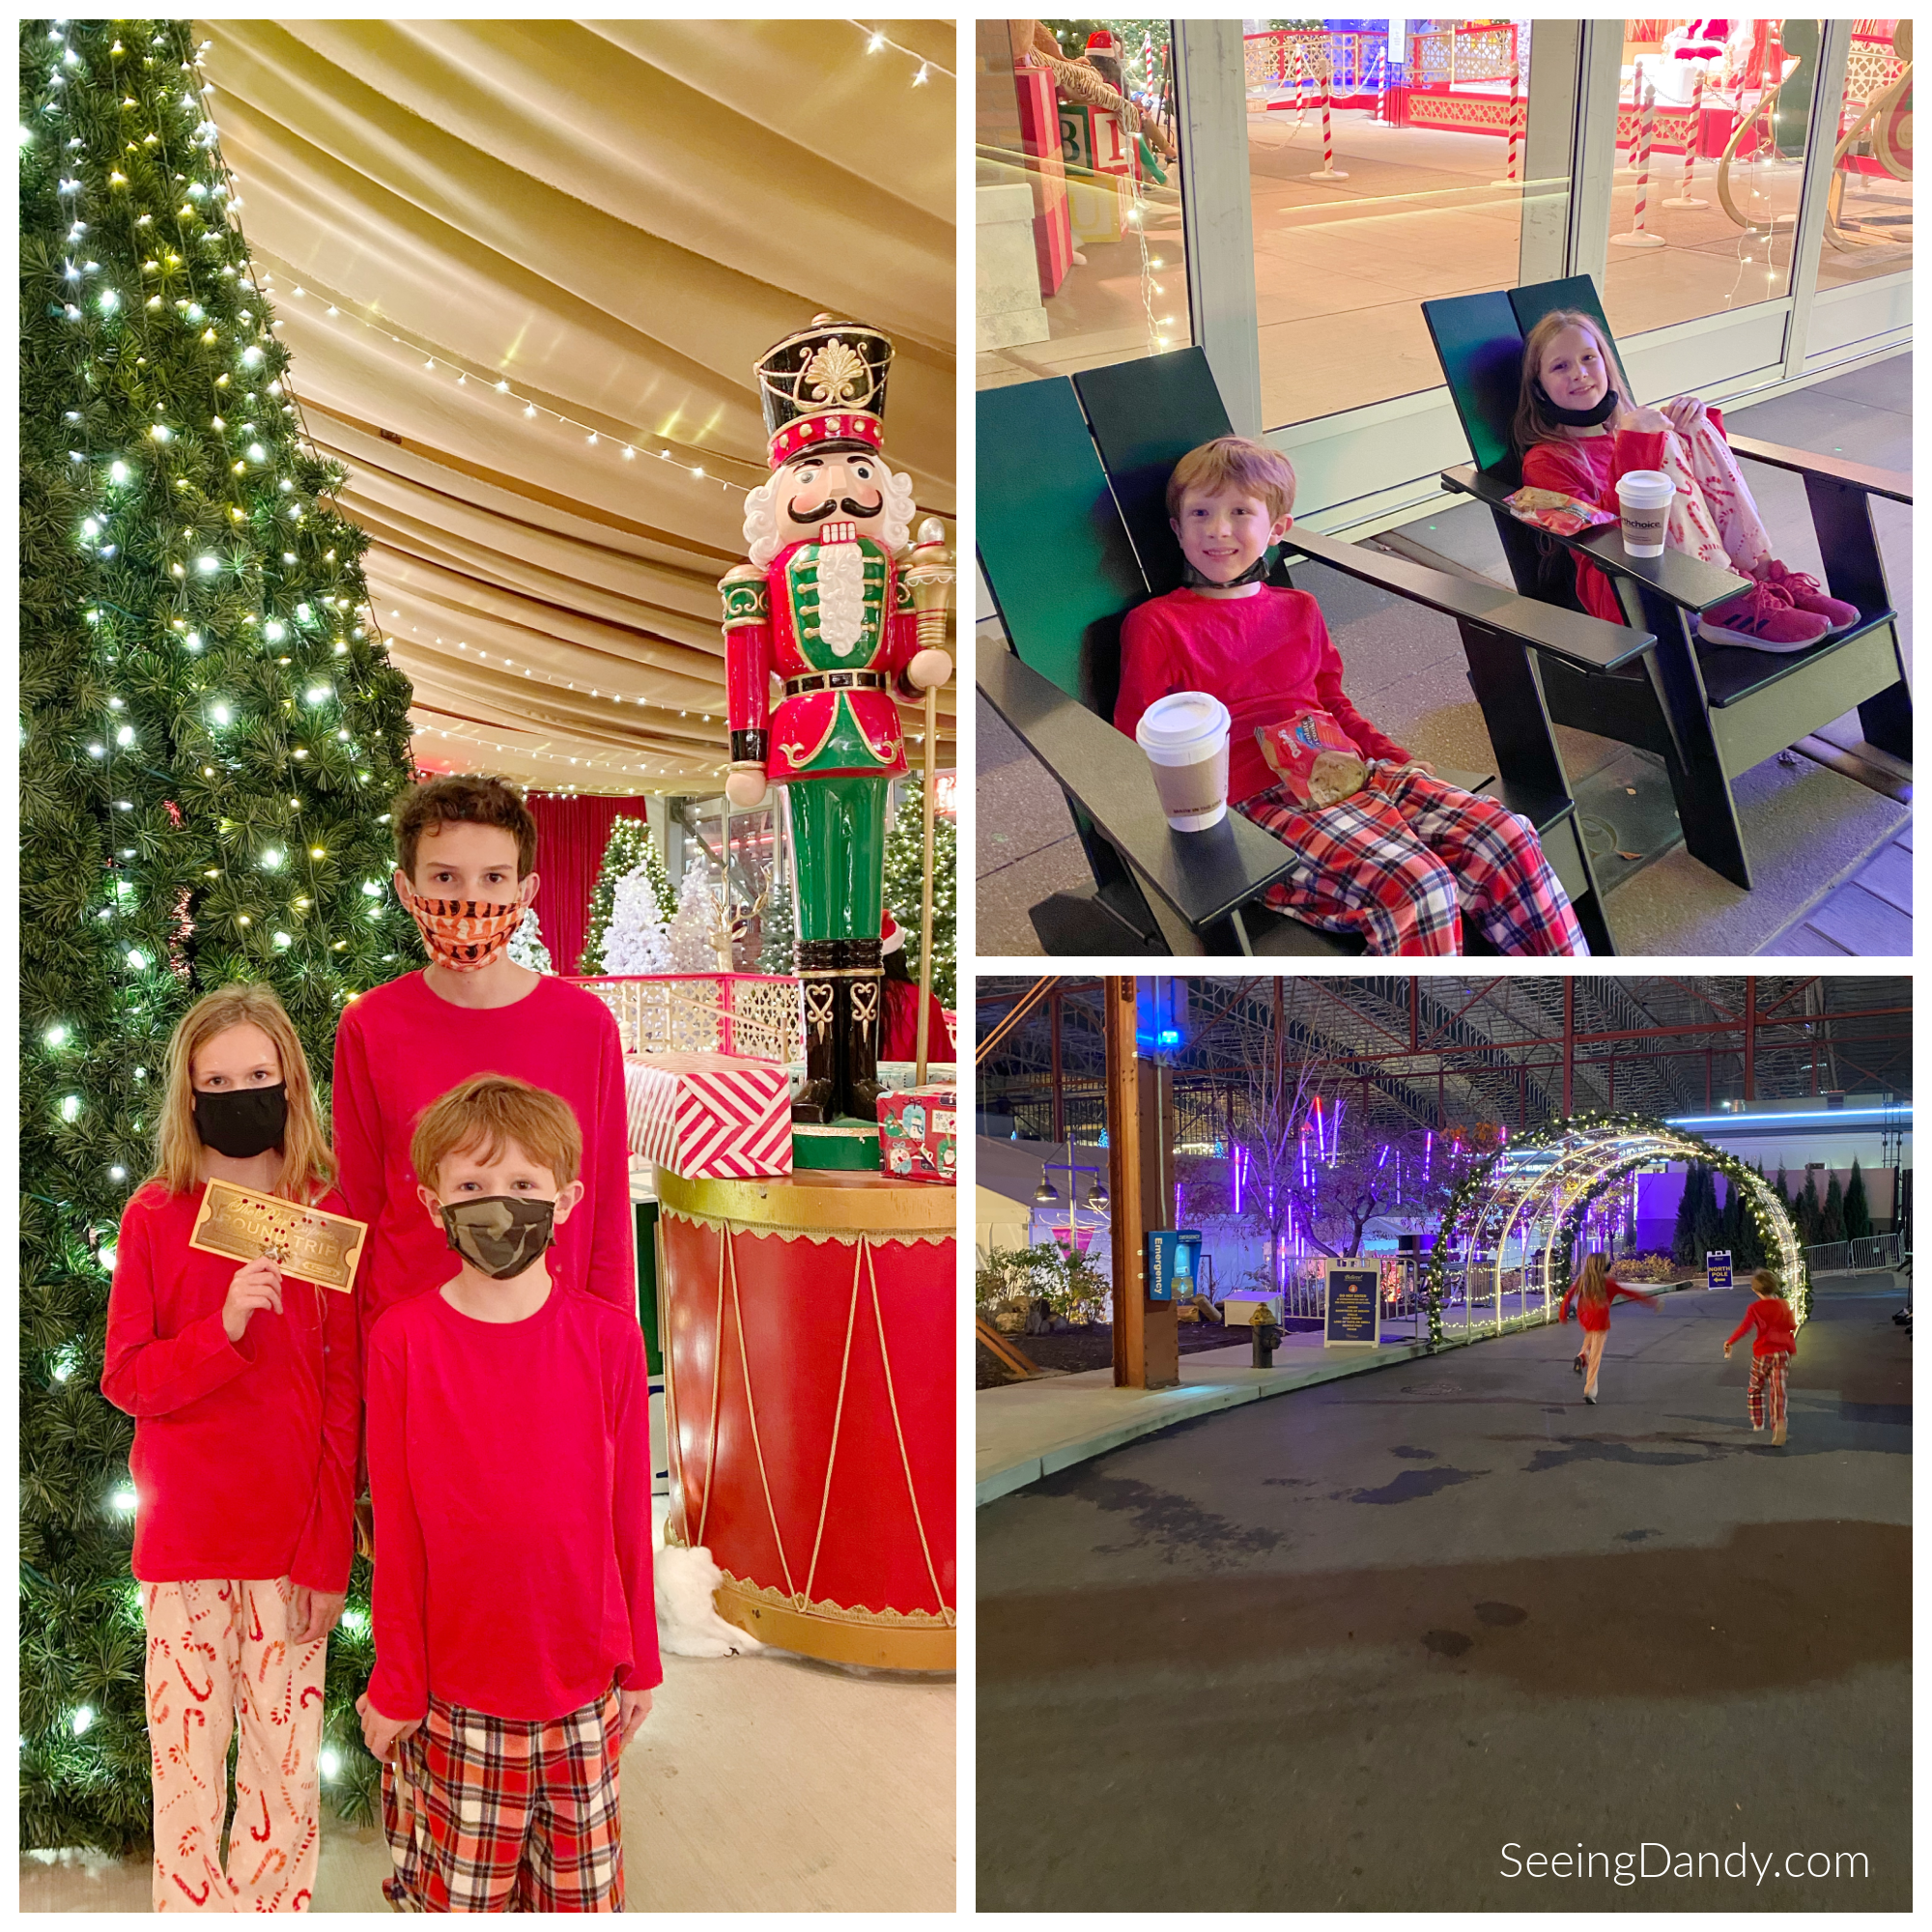 st louis polar express, christmas family fun, union station boardwalk, north pole, nutcracker holiday decorations, christmas tree, polar express hot chocolate, christmas lights